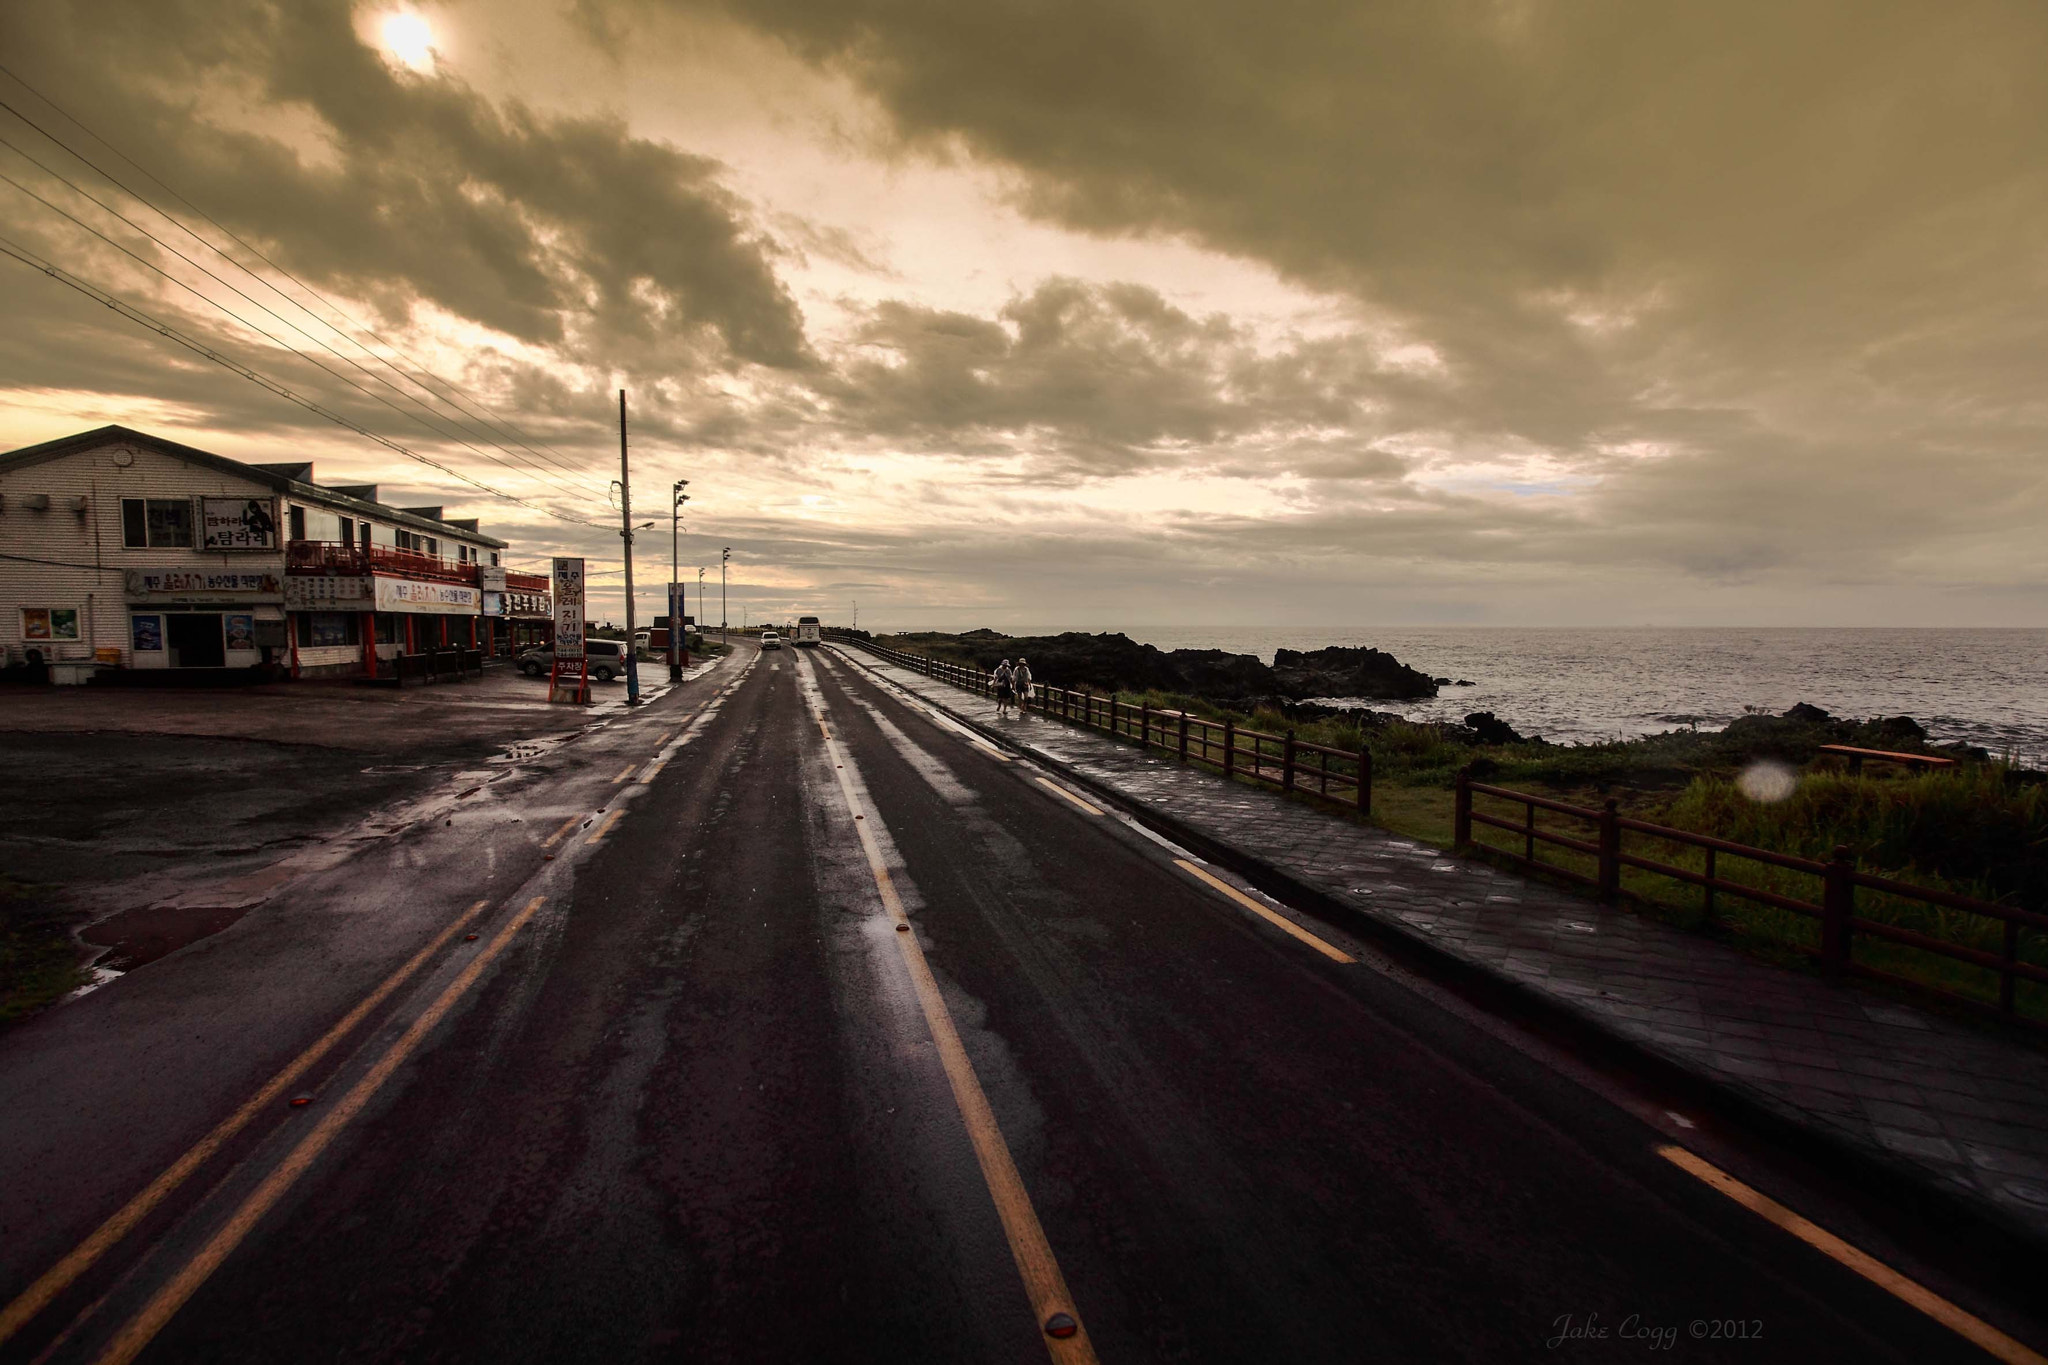 Photograph Untitled by Jake Cogg on 500px